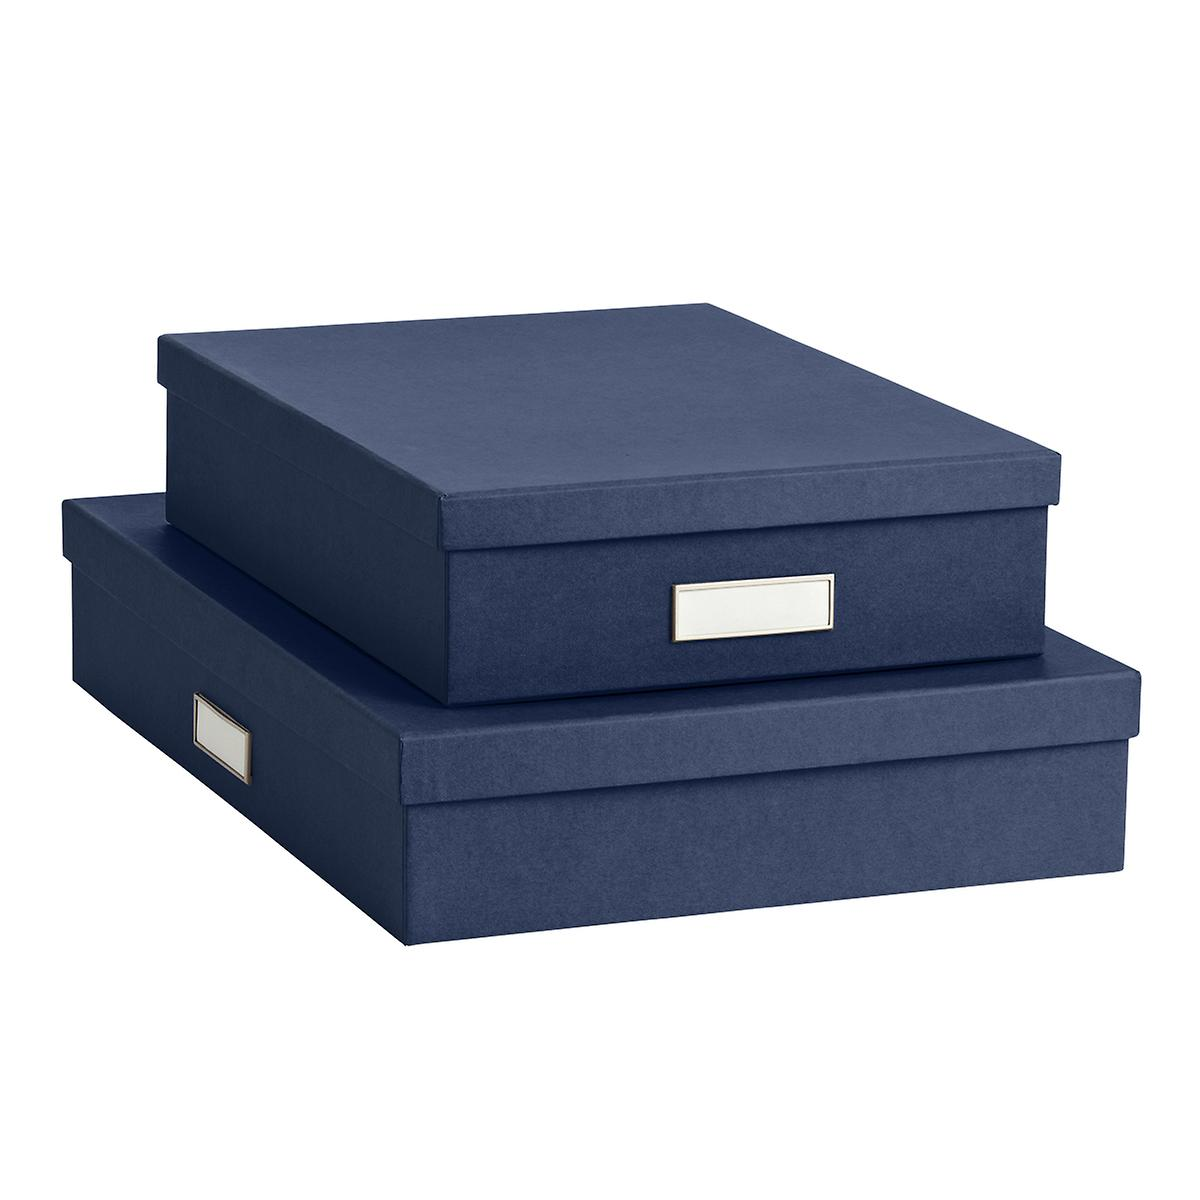 Bigso Navy Stockholm Office Storage Boxes The Container Store